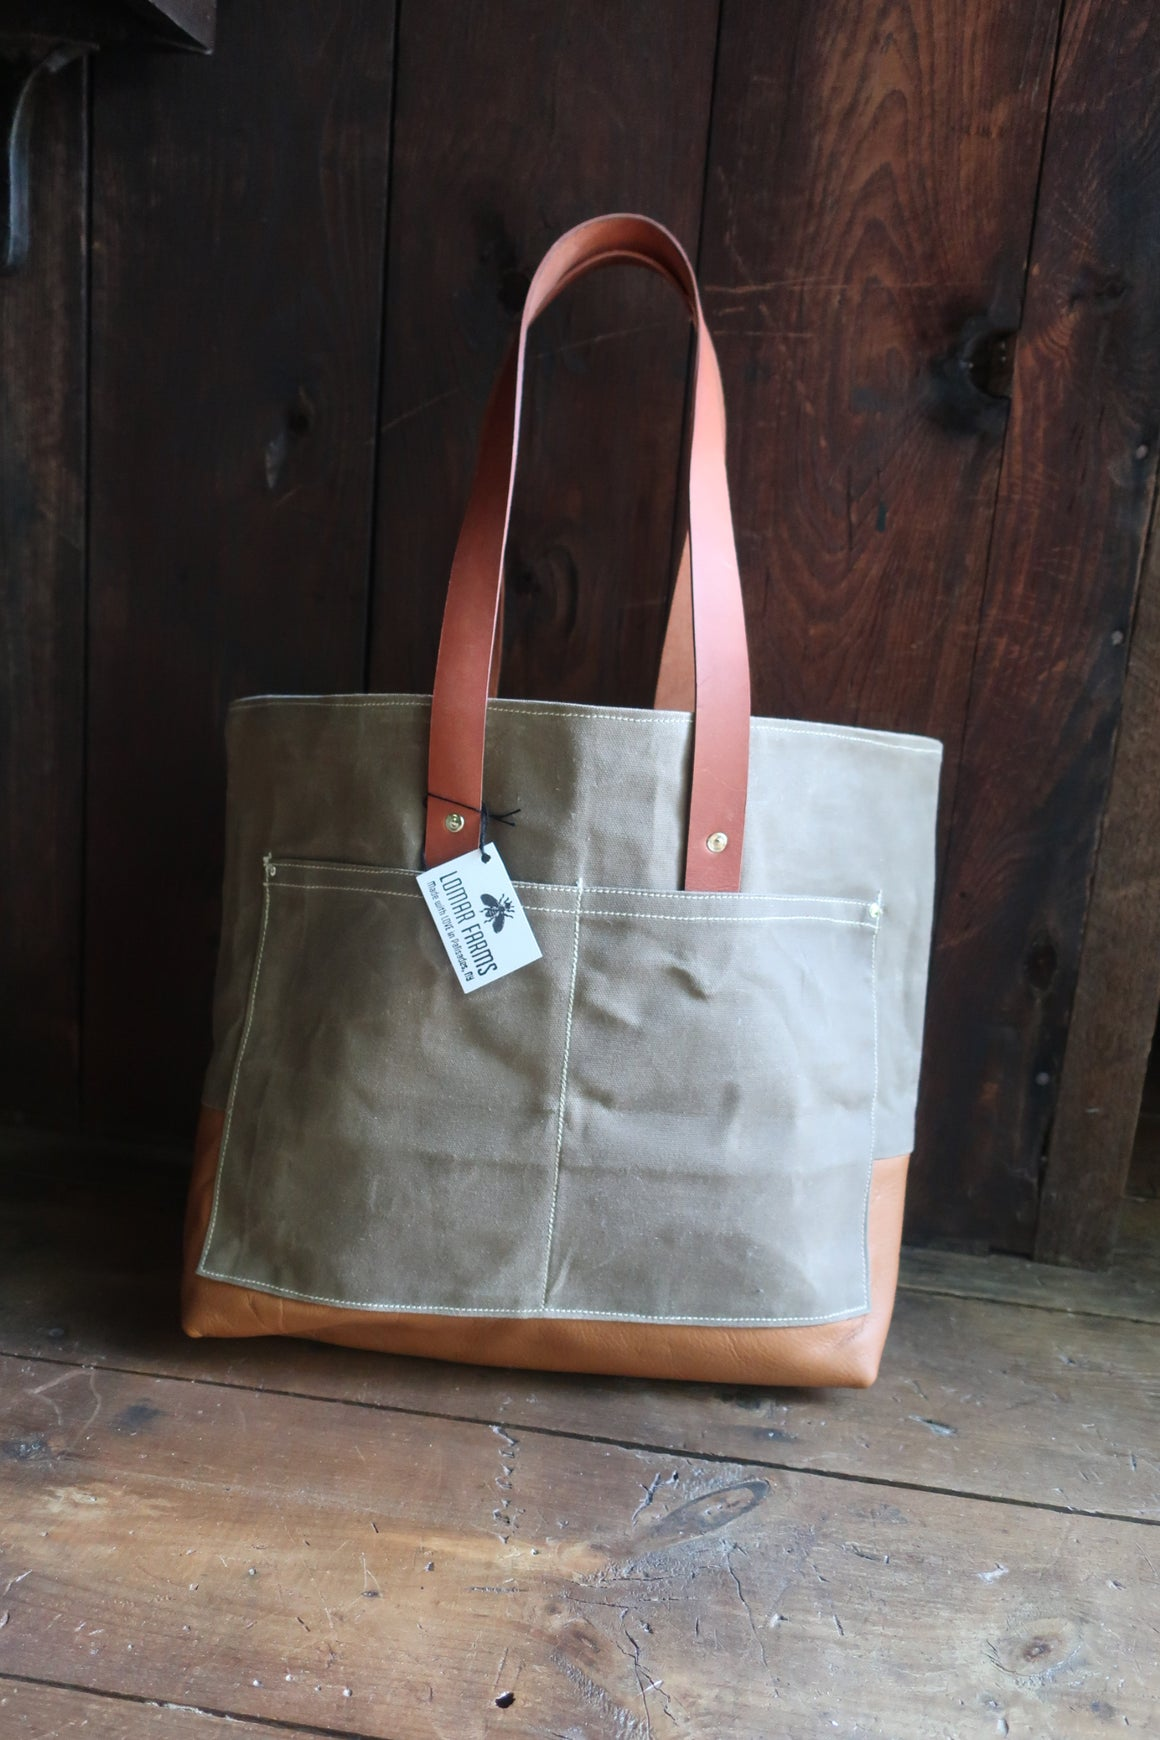 """ Marley"" Farm Bag (Light Brown/Grey Canvas With tan Leather Bottom & Straps)"